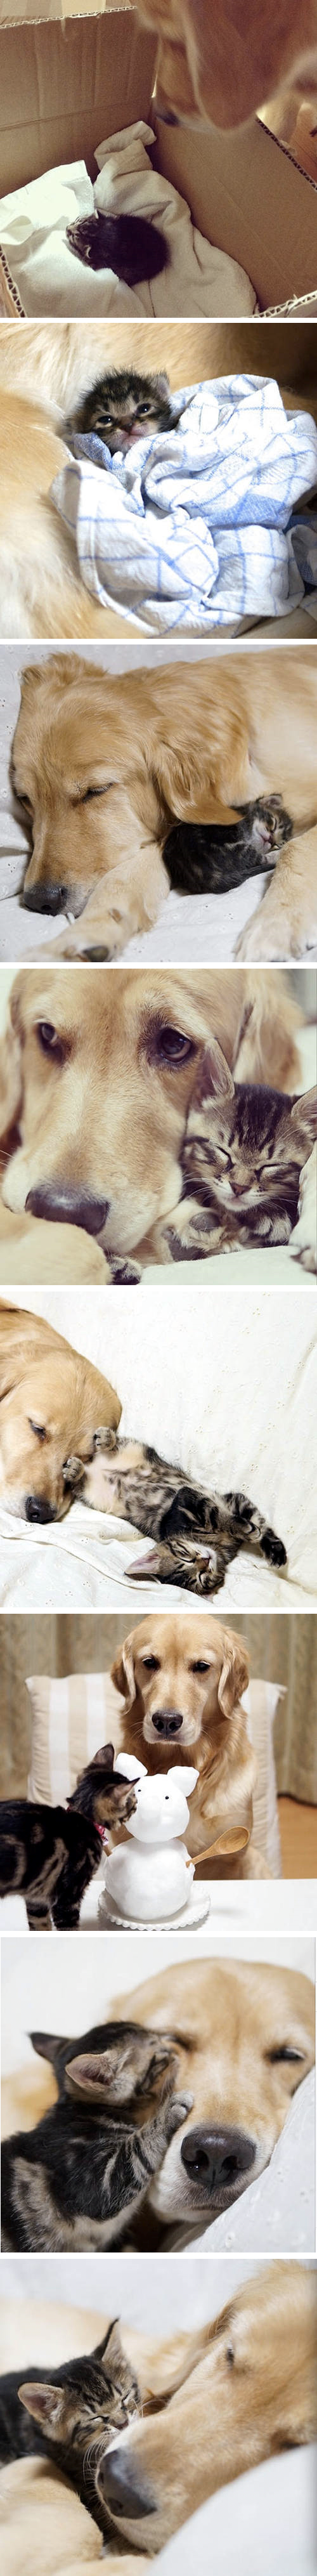 Kitty rejected by mother, cared for by a golden retriever.